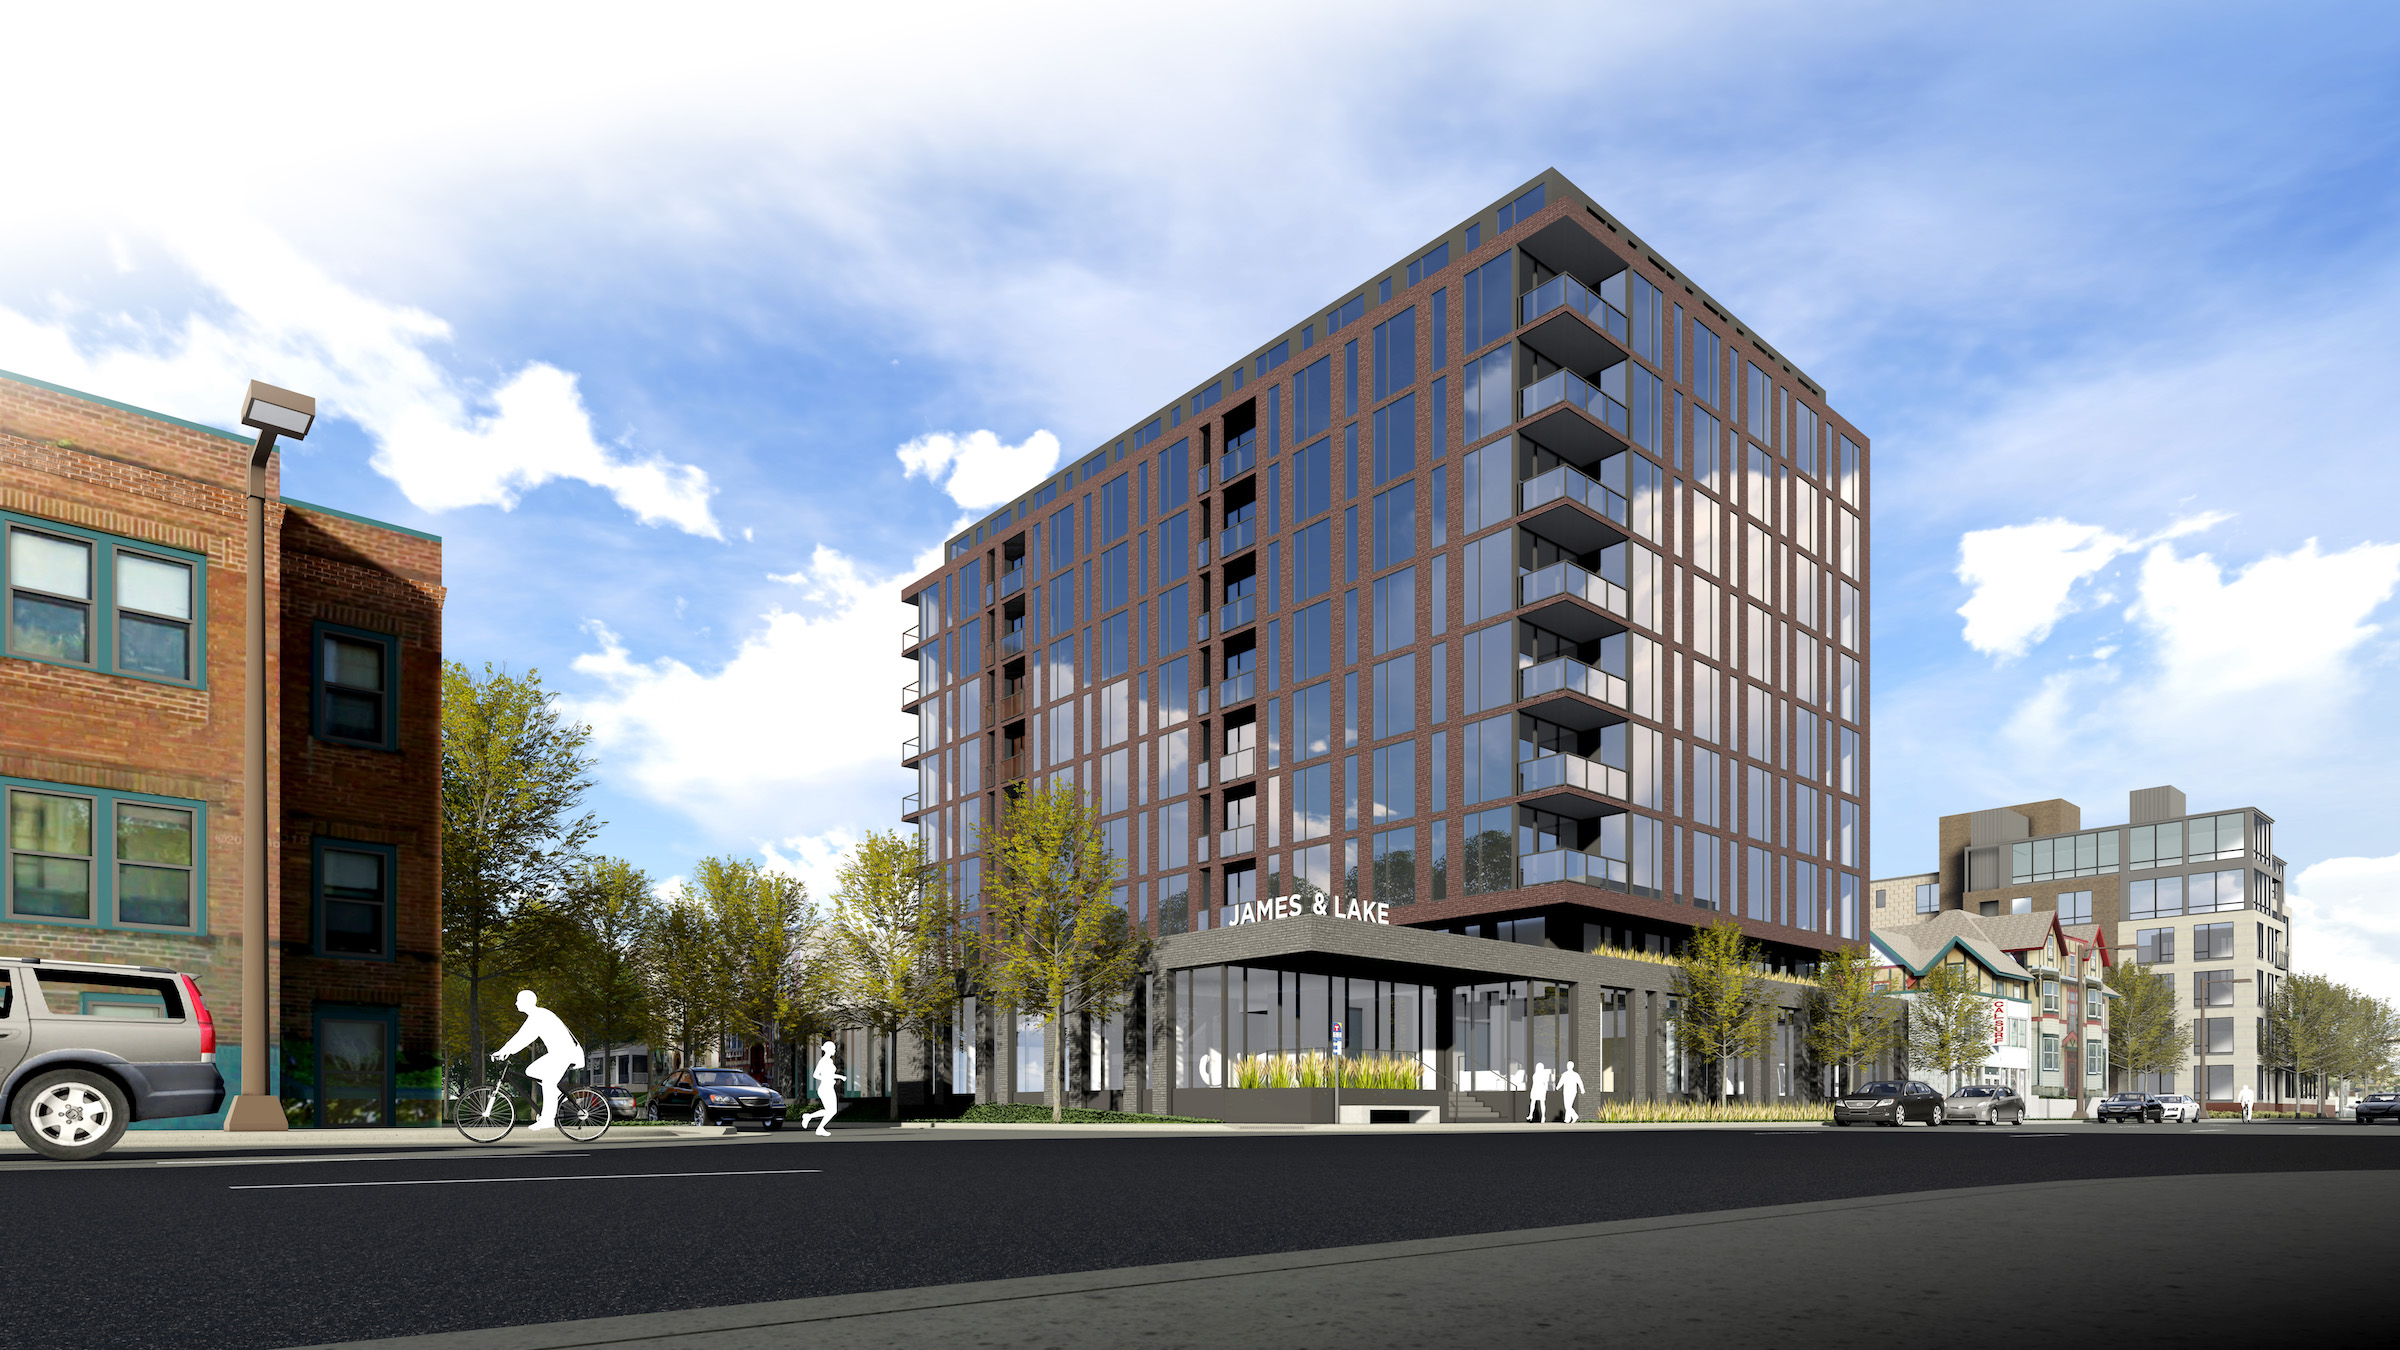 A rendering of the proposed 10-story mixed-use apartment building at Lake & James in Uptown. Submitted image.